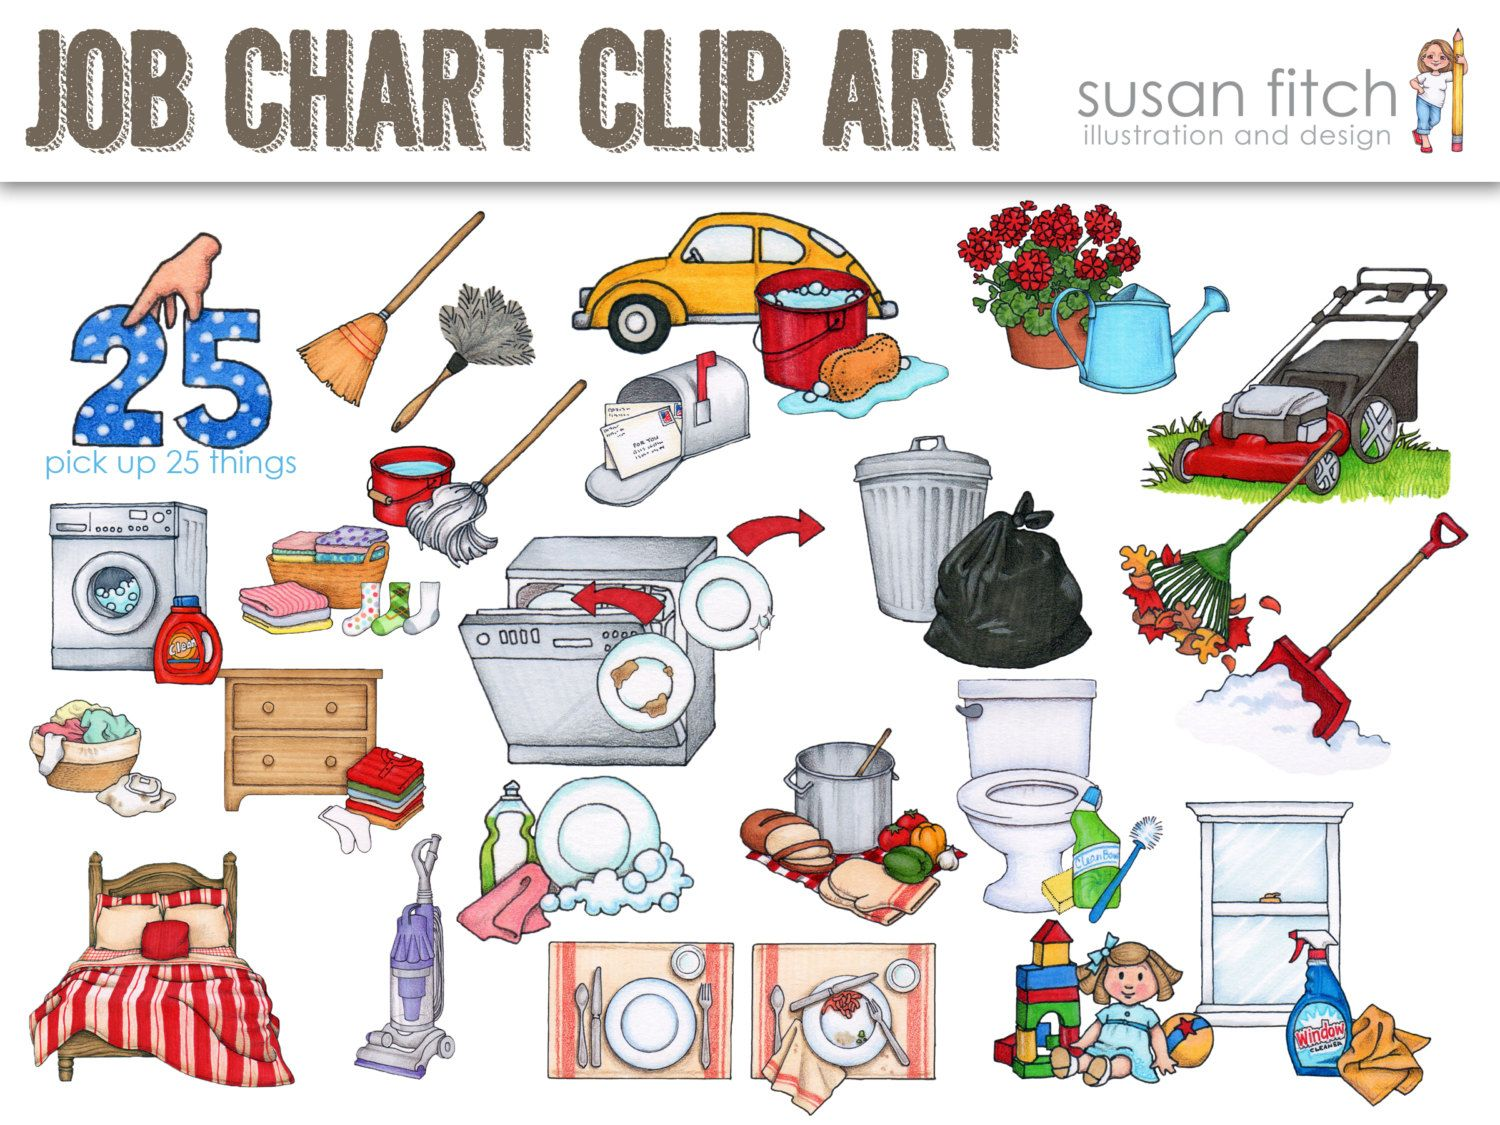 svg free library Chore clipart load dishwasher. Job chart clip art.